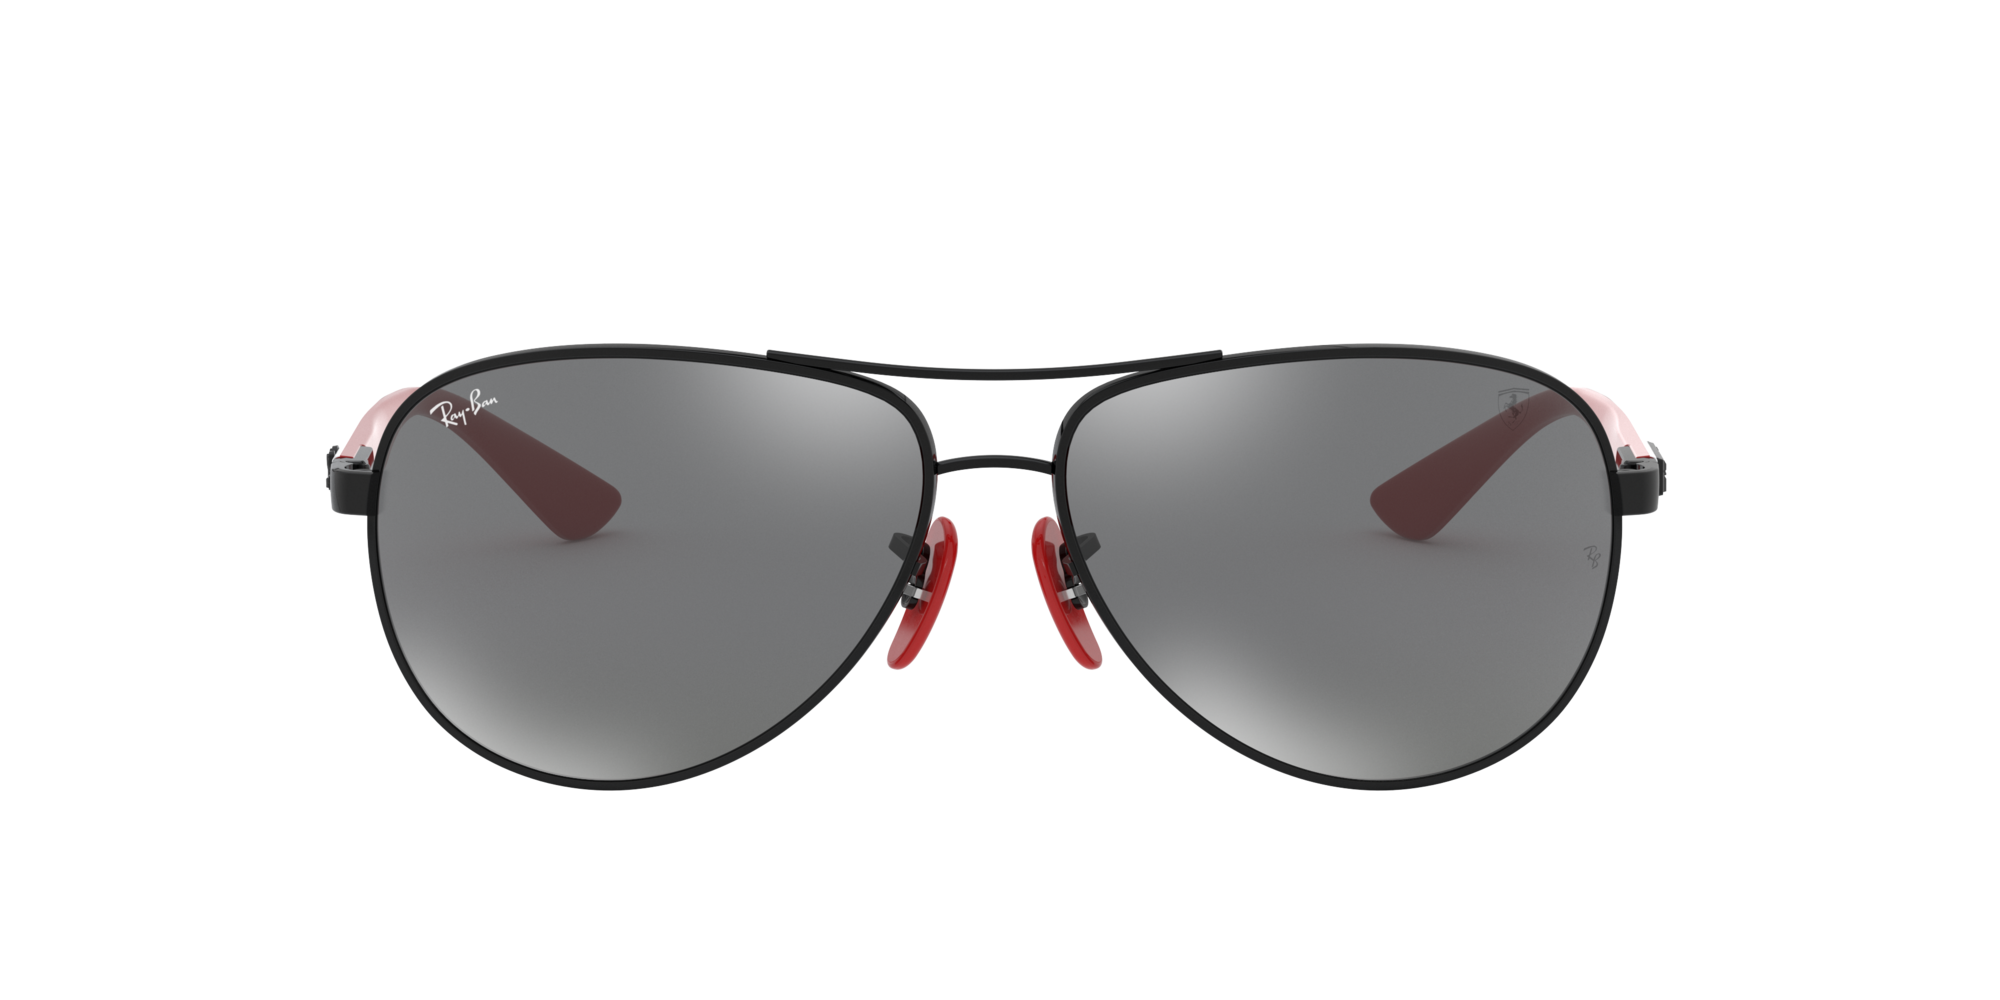 Image for RB8313M 61 FERRARI from LensCrafters | Glasses, Prescription Glasses Online, Eyewear